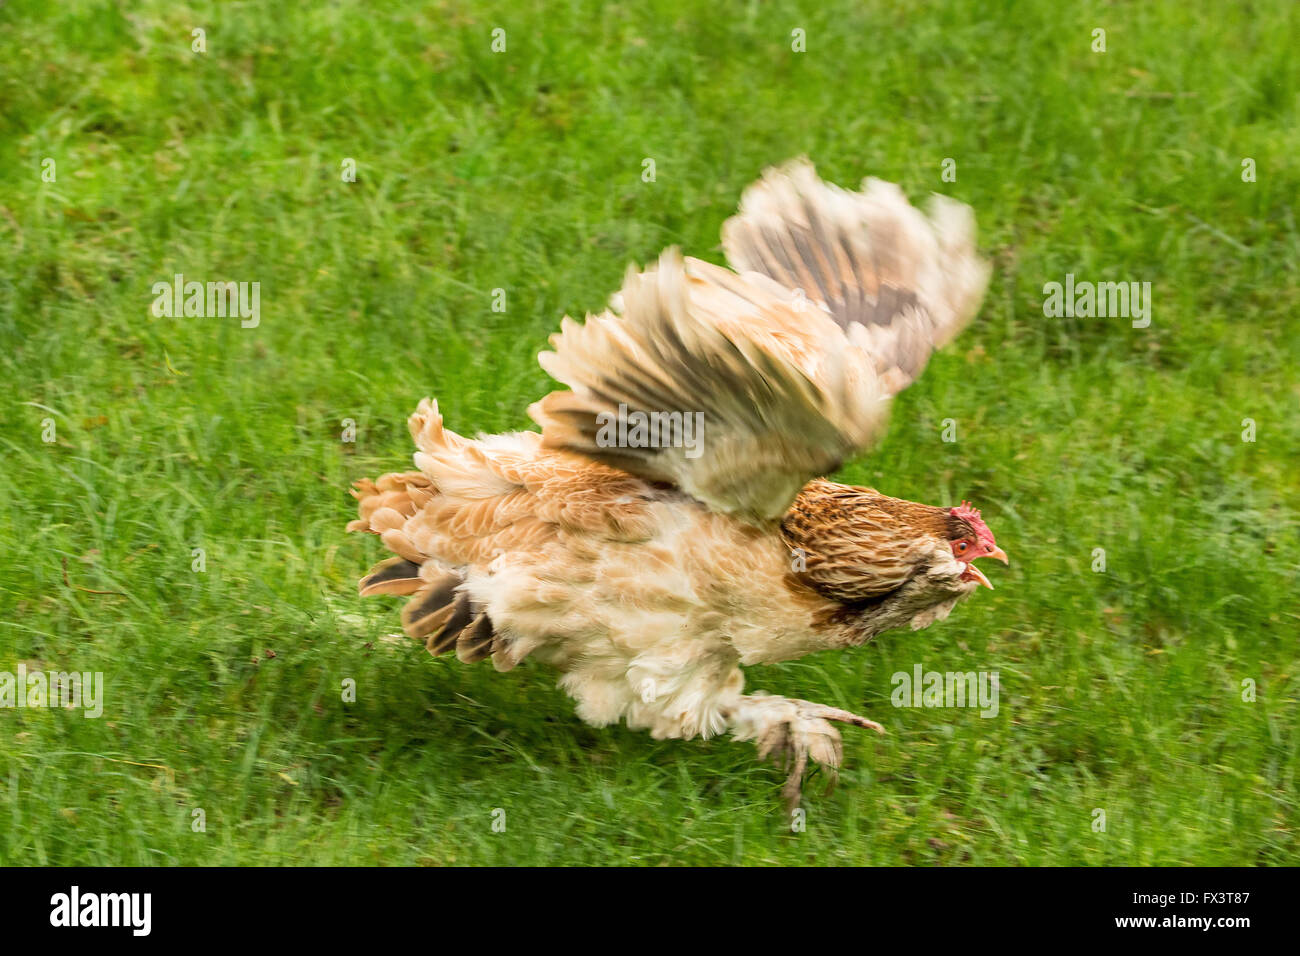 A Salmon Faverolles chicken was fleeing for its life as it was being chased by a mischievous puppy in his backyard - Stock Image